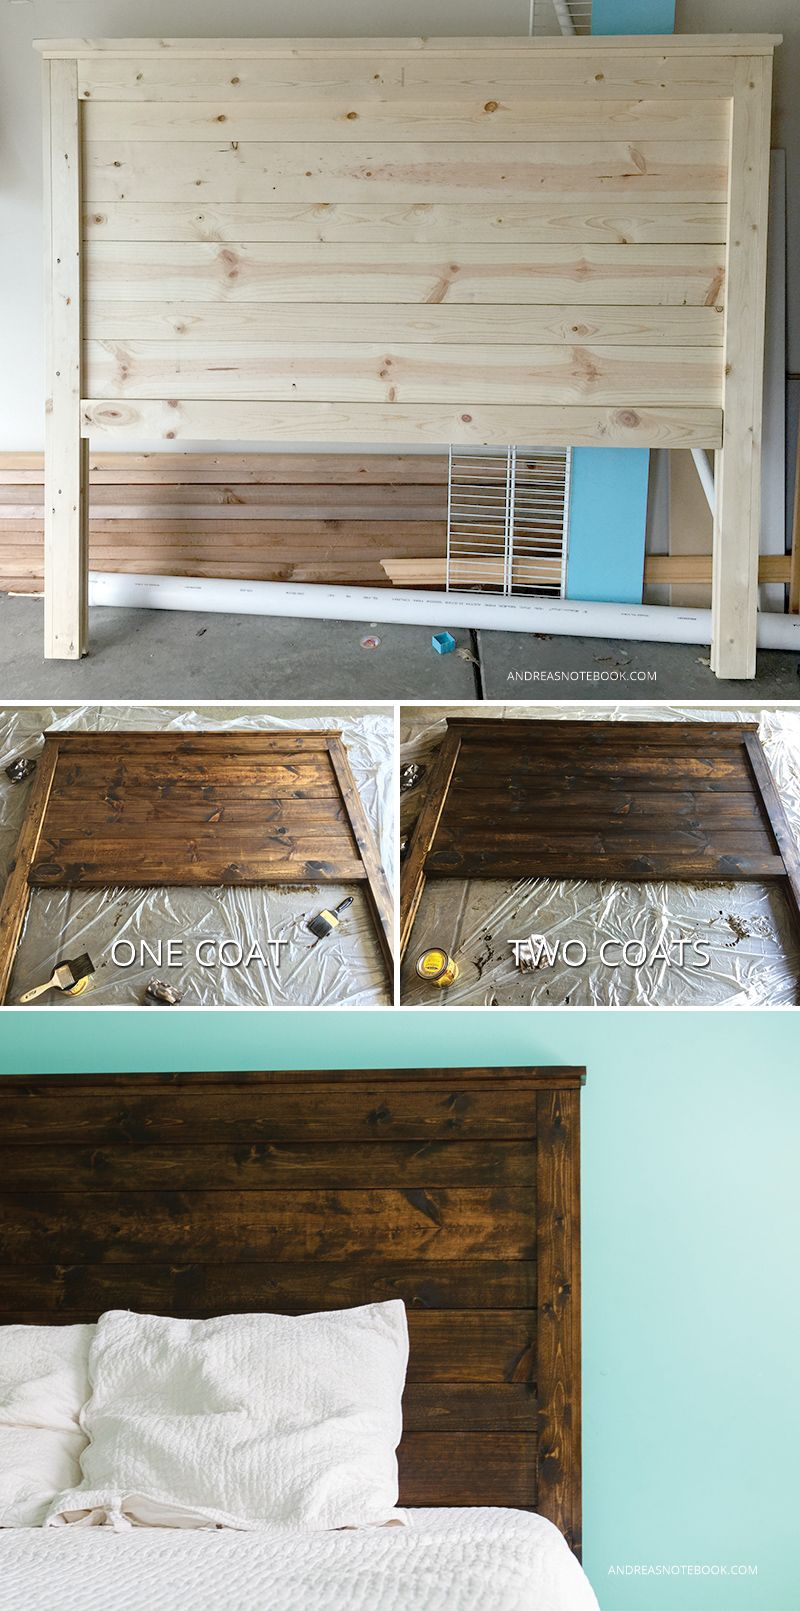 wooden quick creative rustic headboards diy headboard plans wood bedroom ideas easy queen